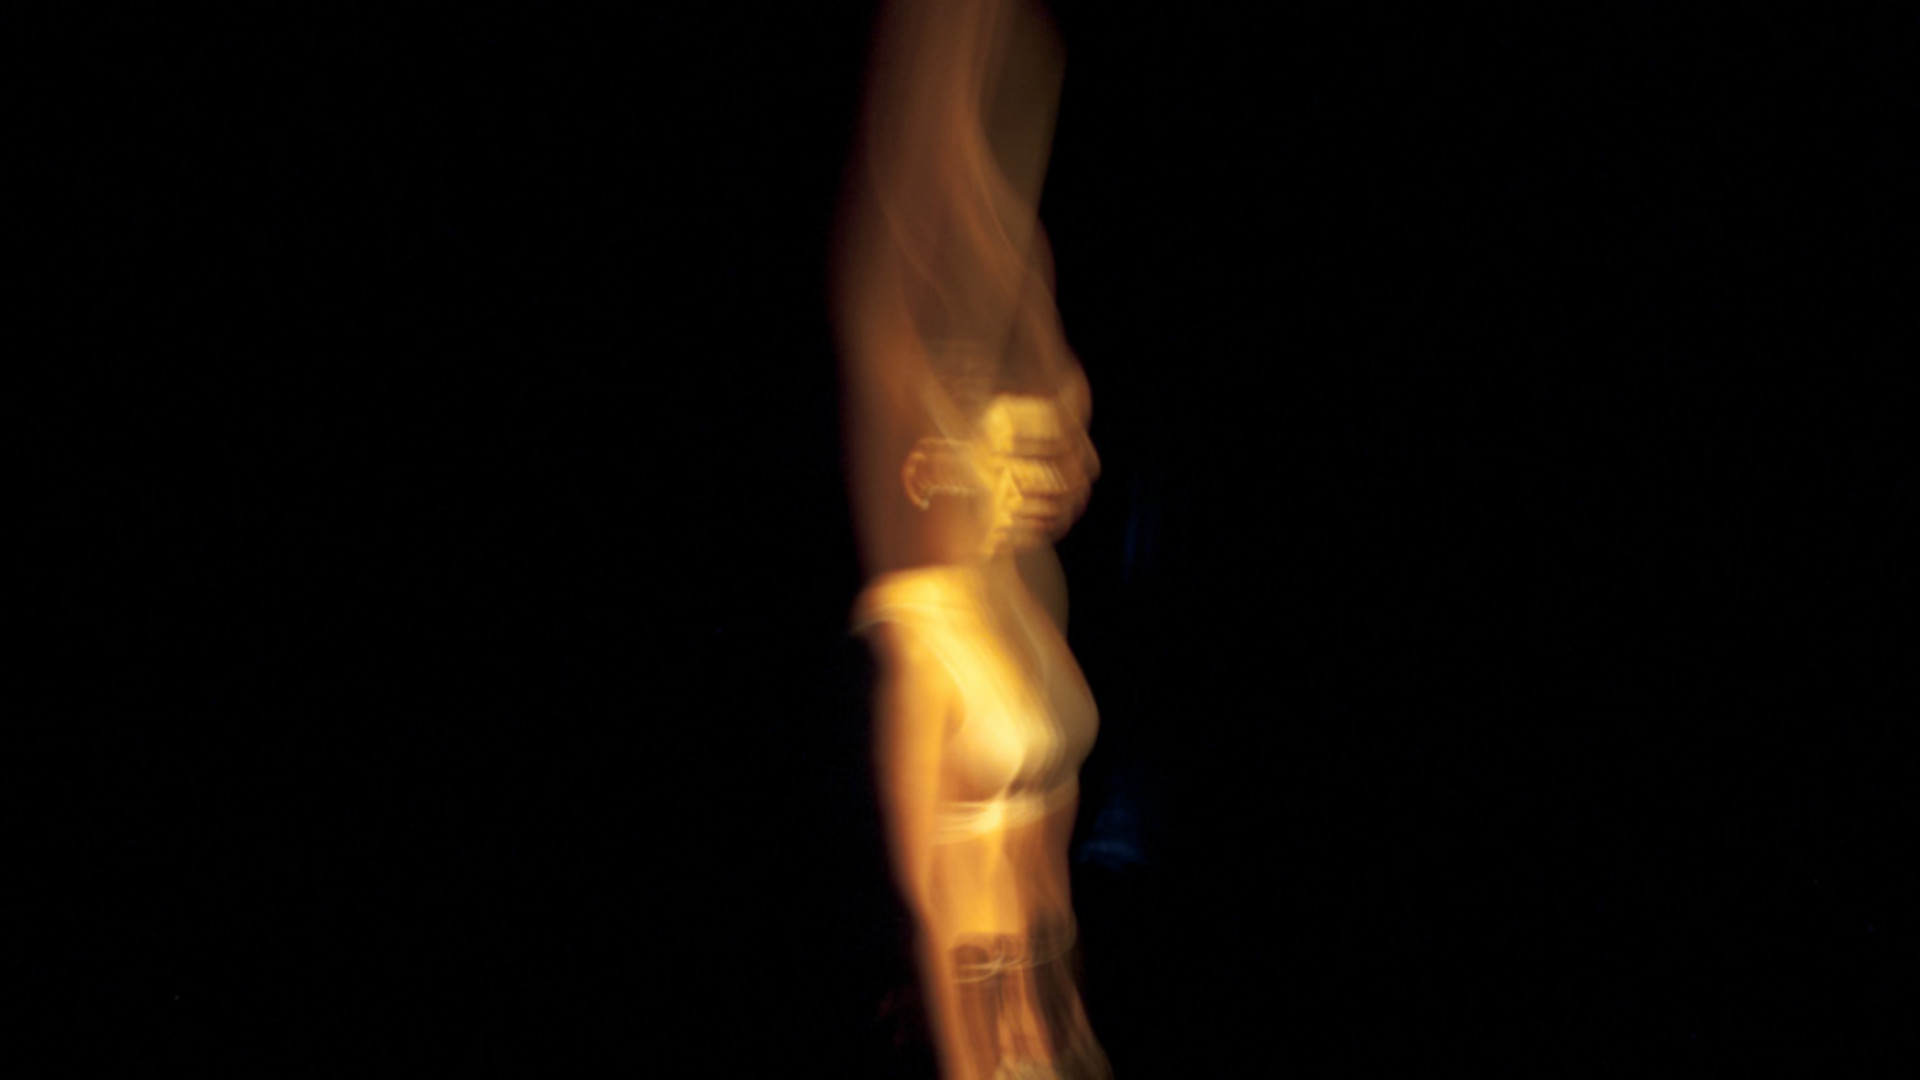 A spiralling, yellow blurred image of a woman in a black background